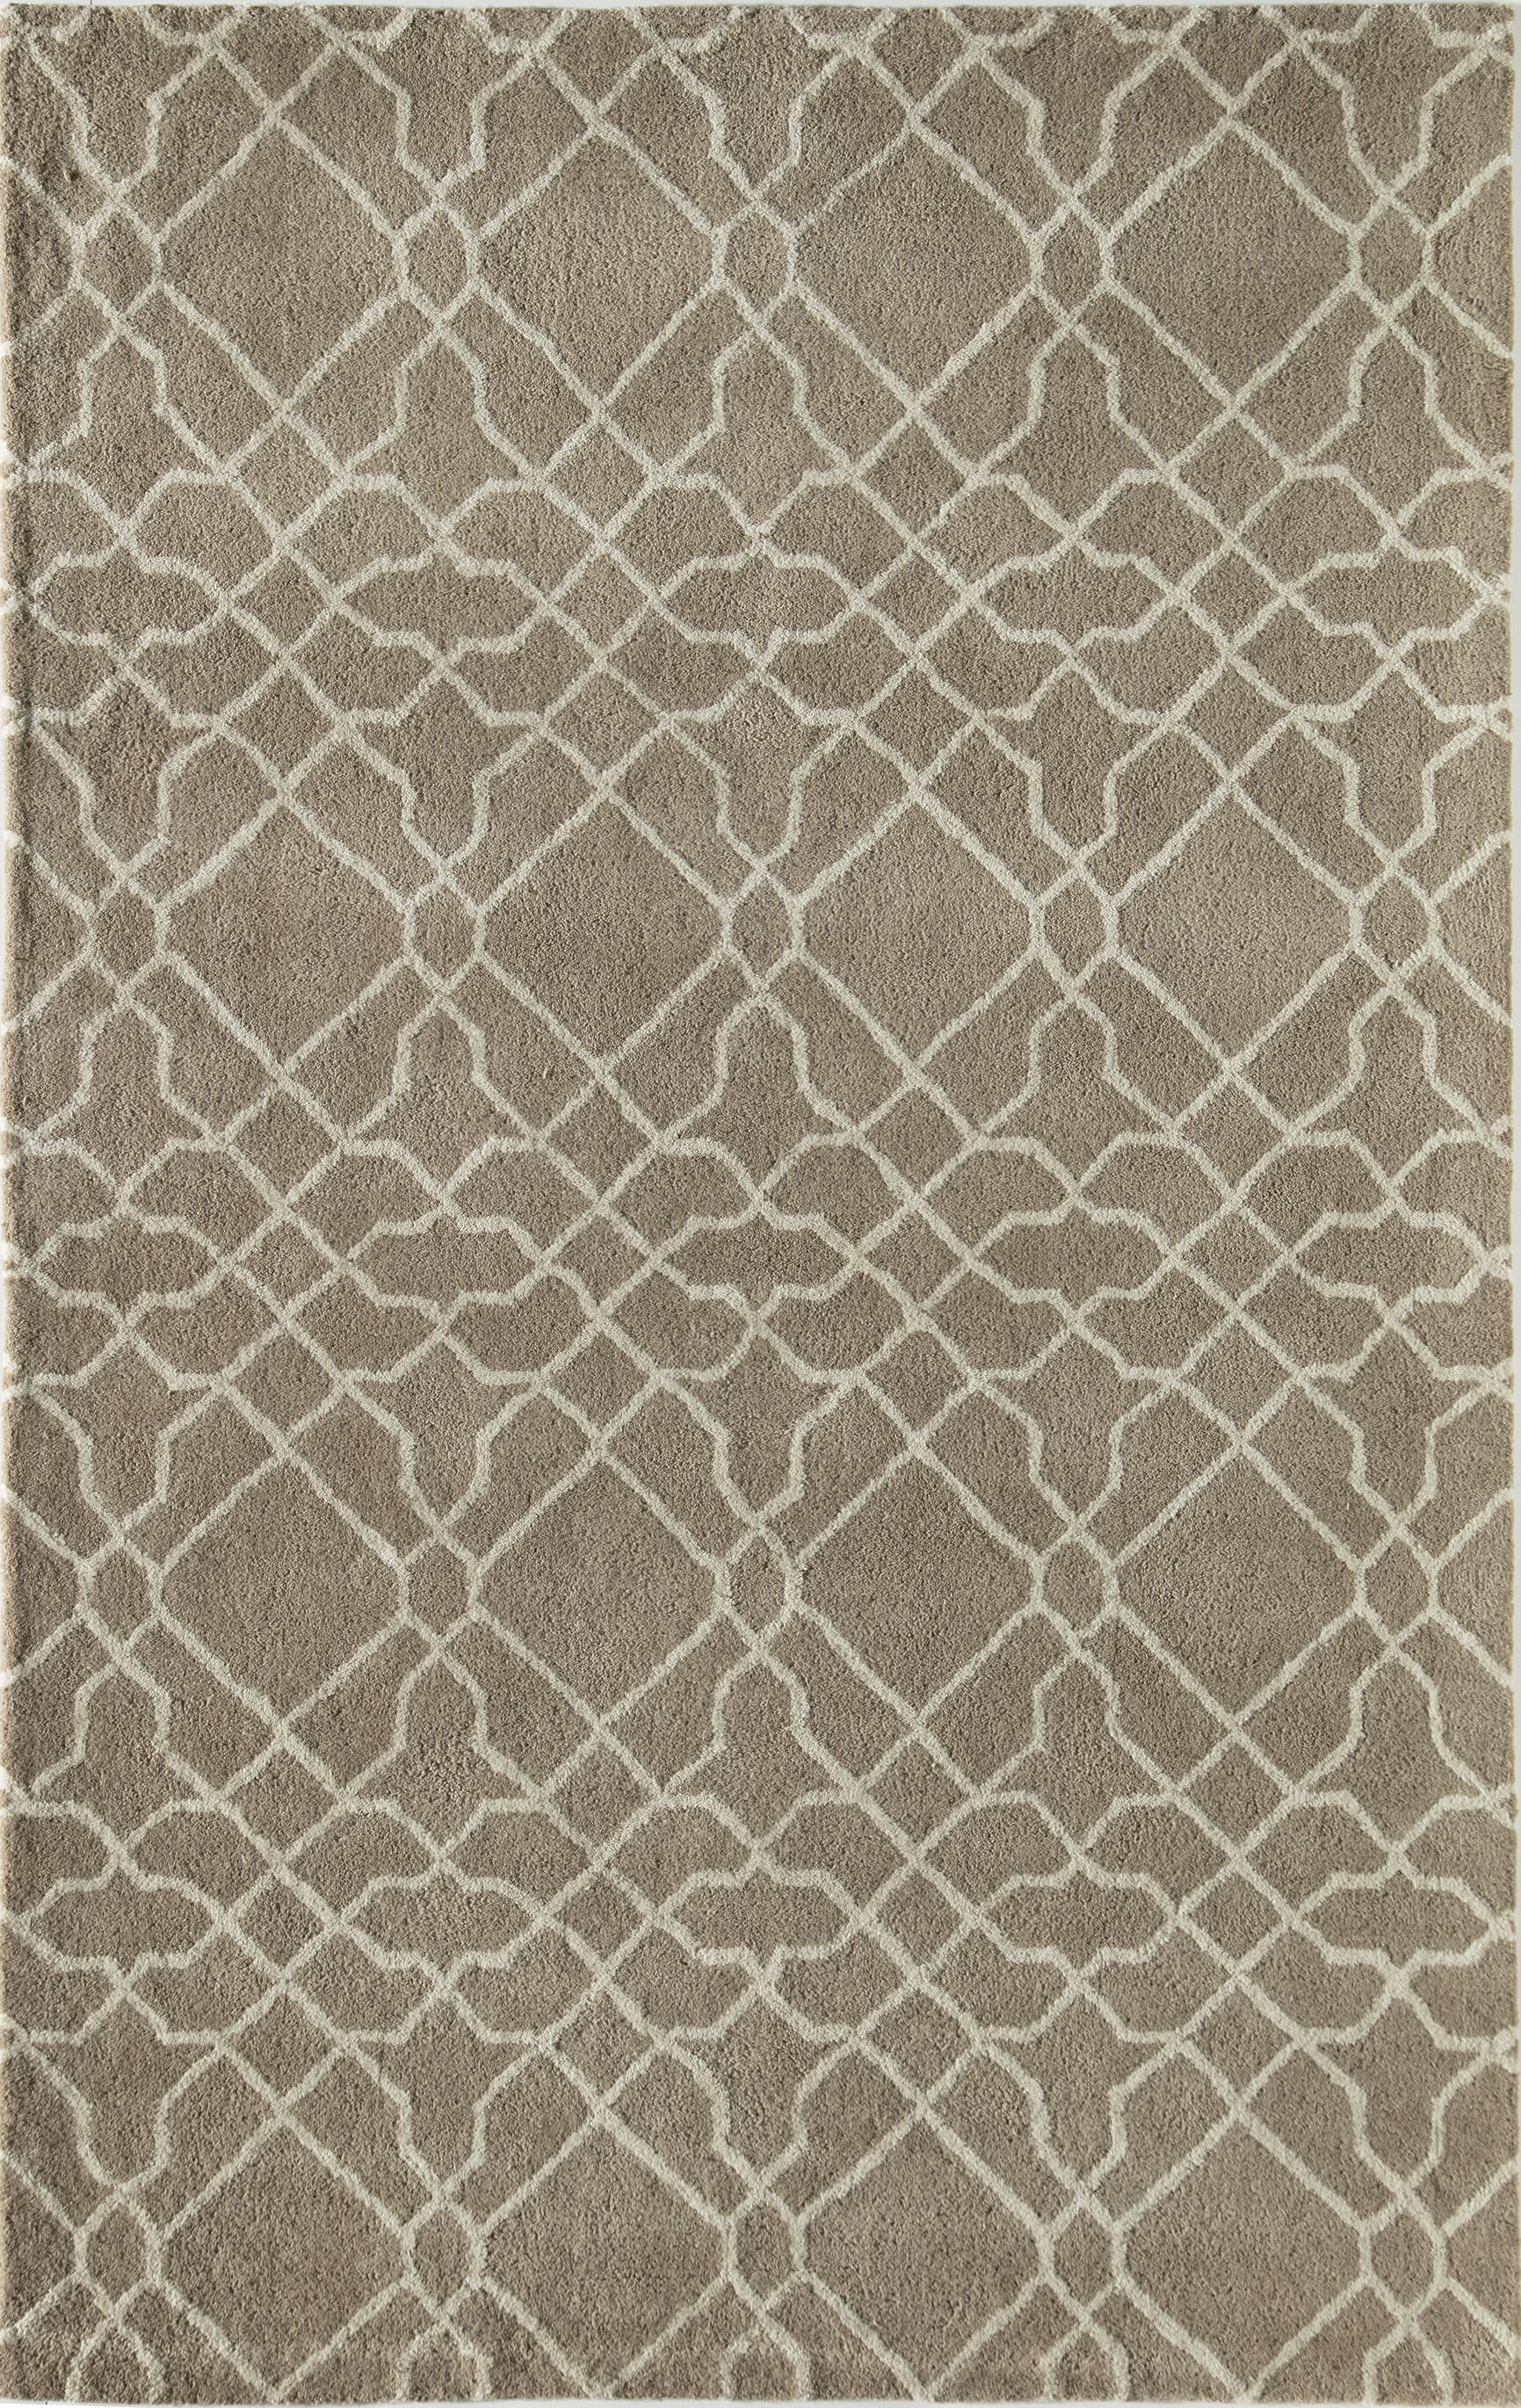 Mckay Geometric Hand-Tufted Wool Beige Area Rug Rug Size: 8' x 10'